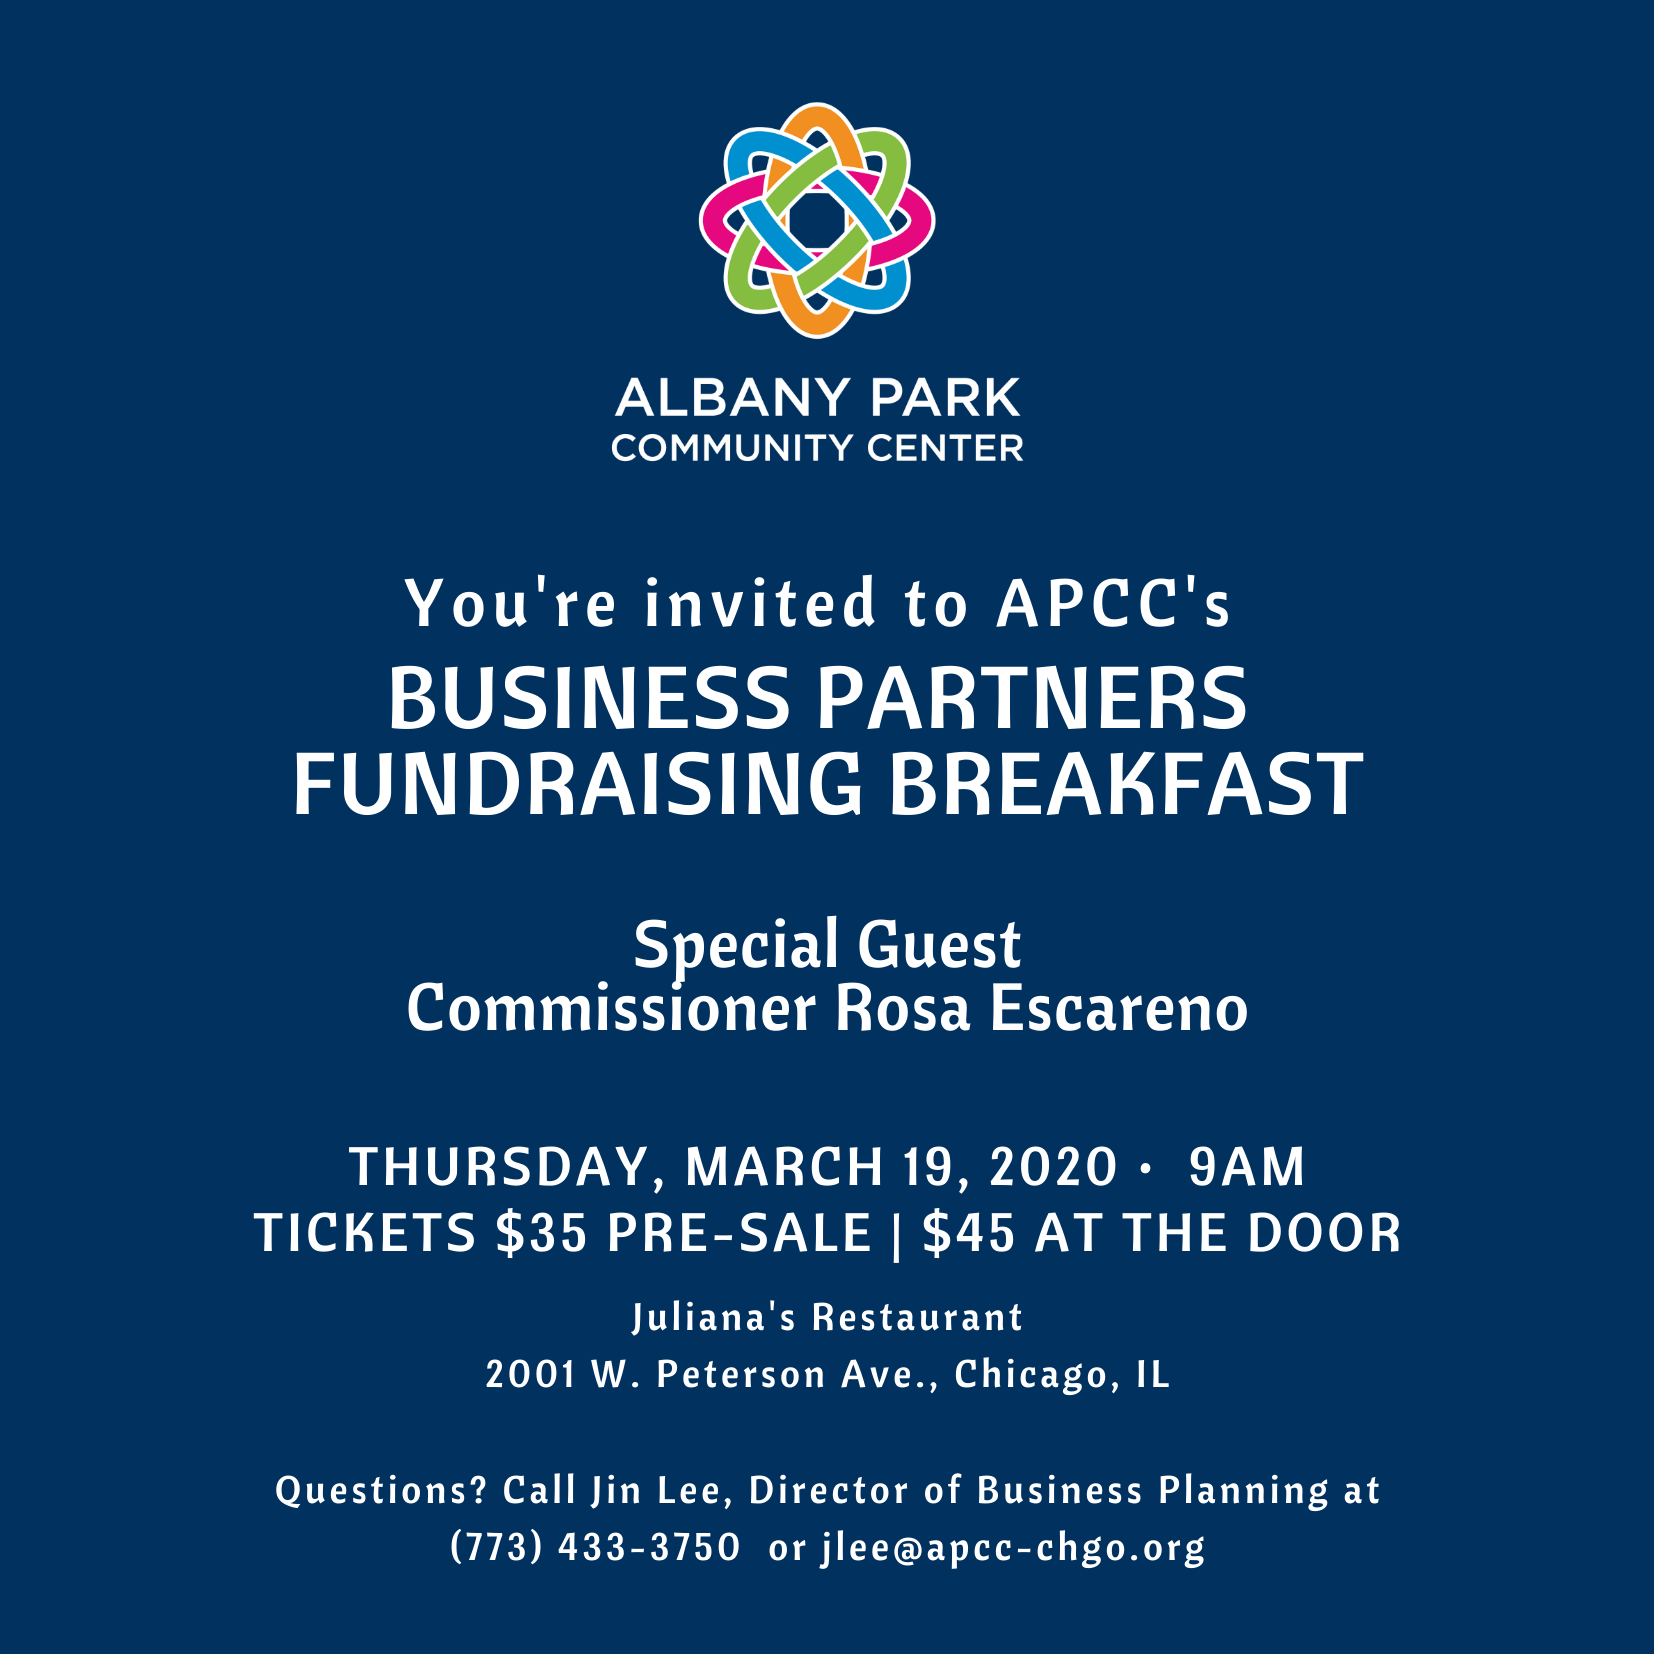 Business Partners Fundraising Breakfast image